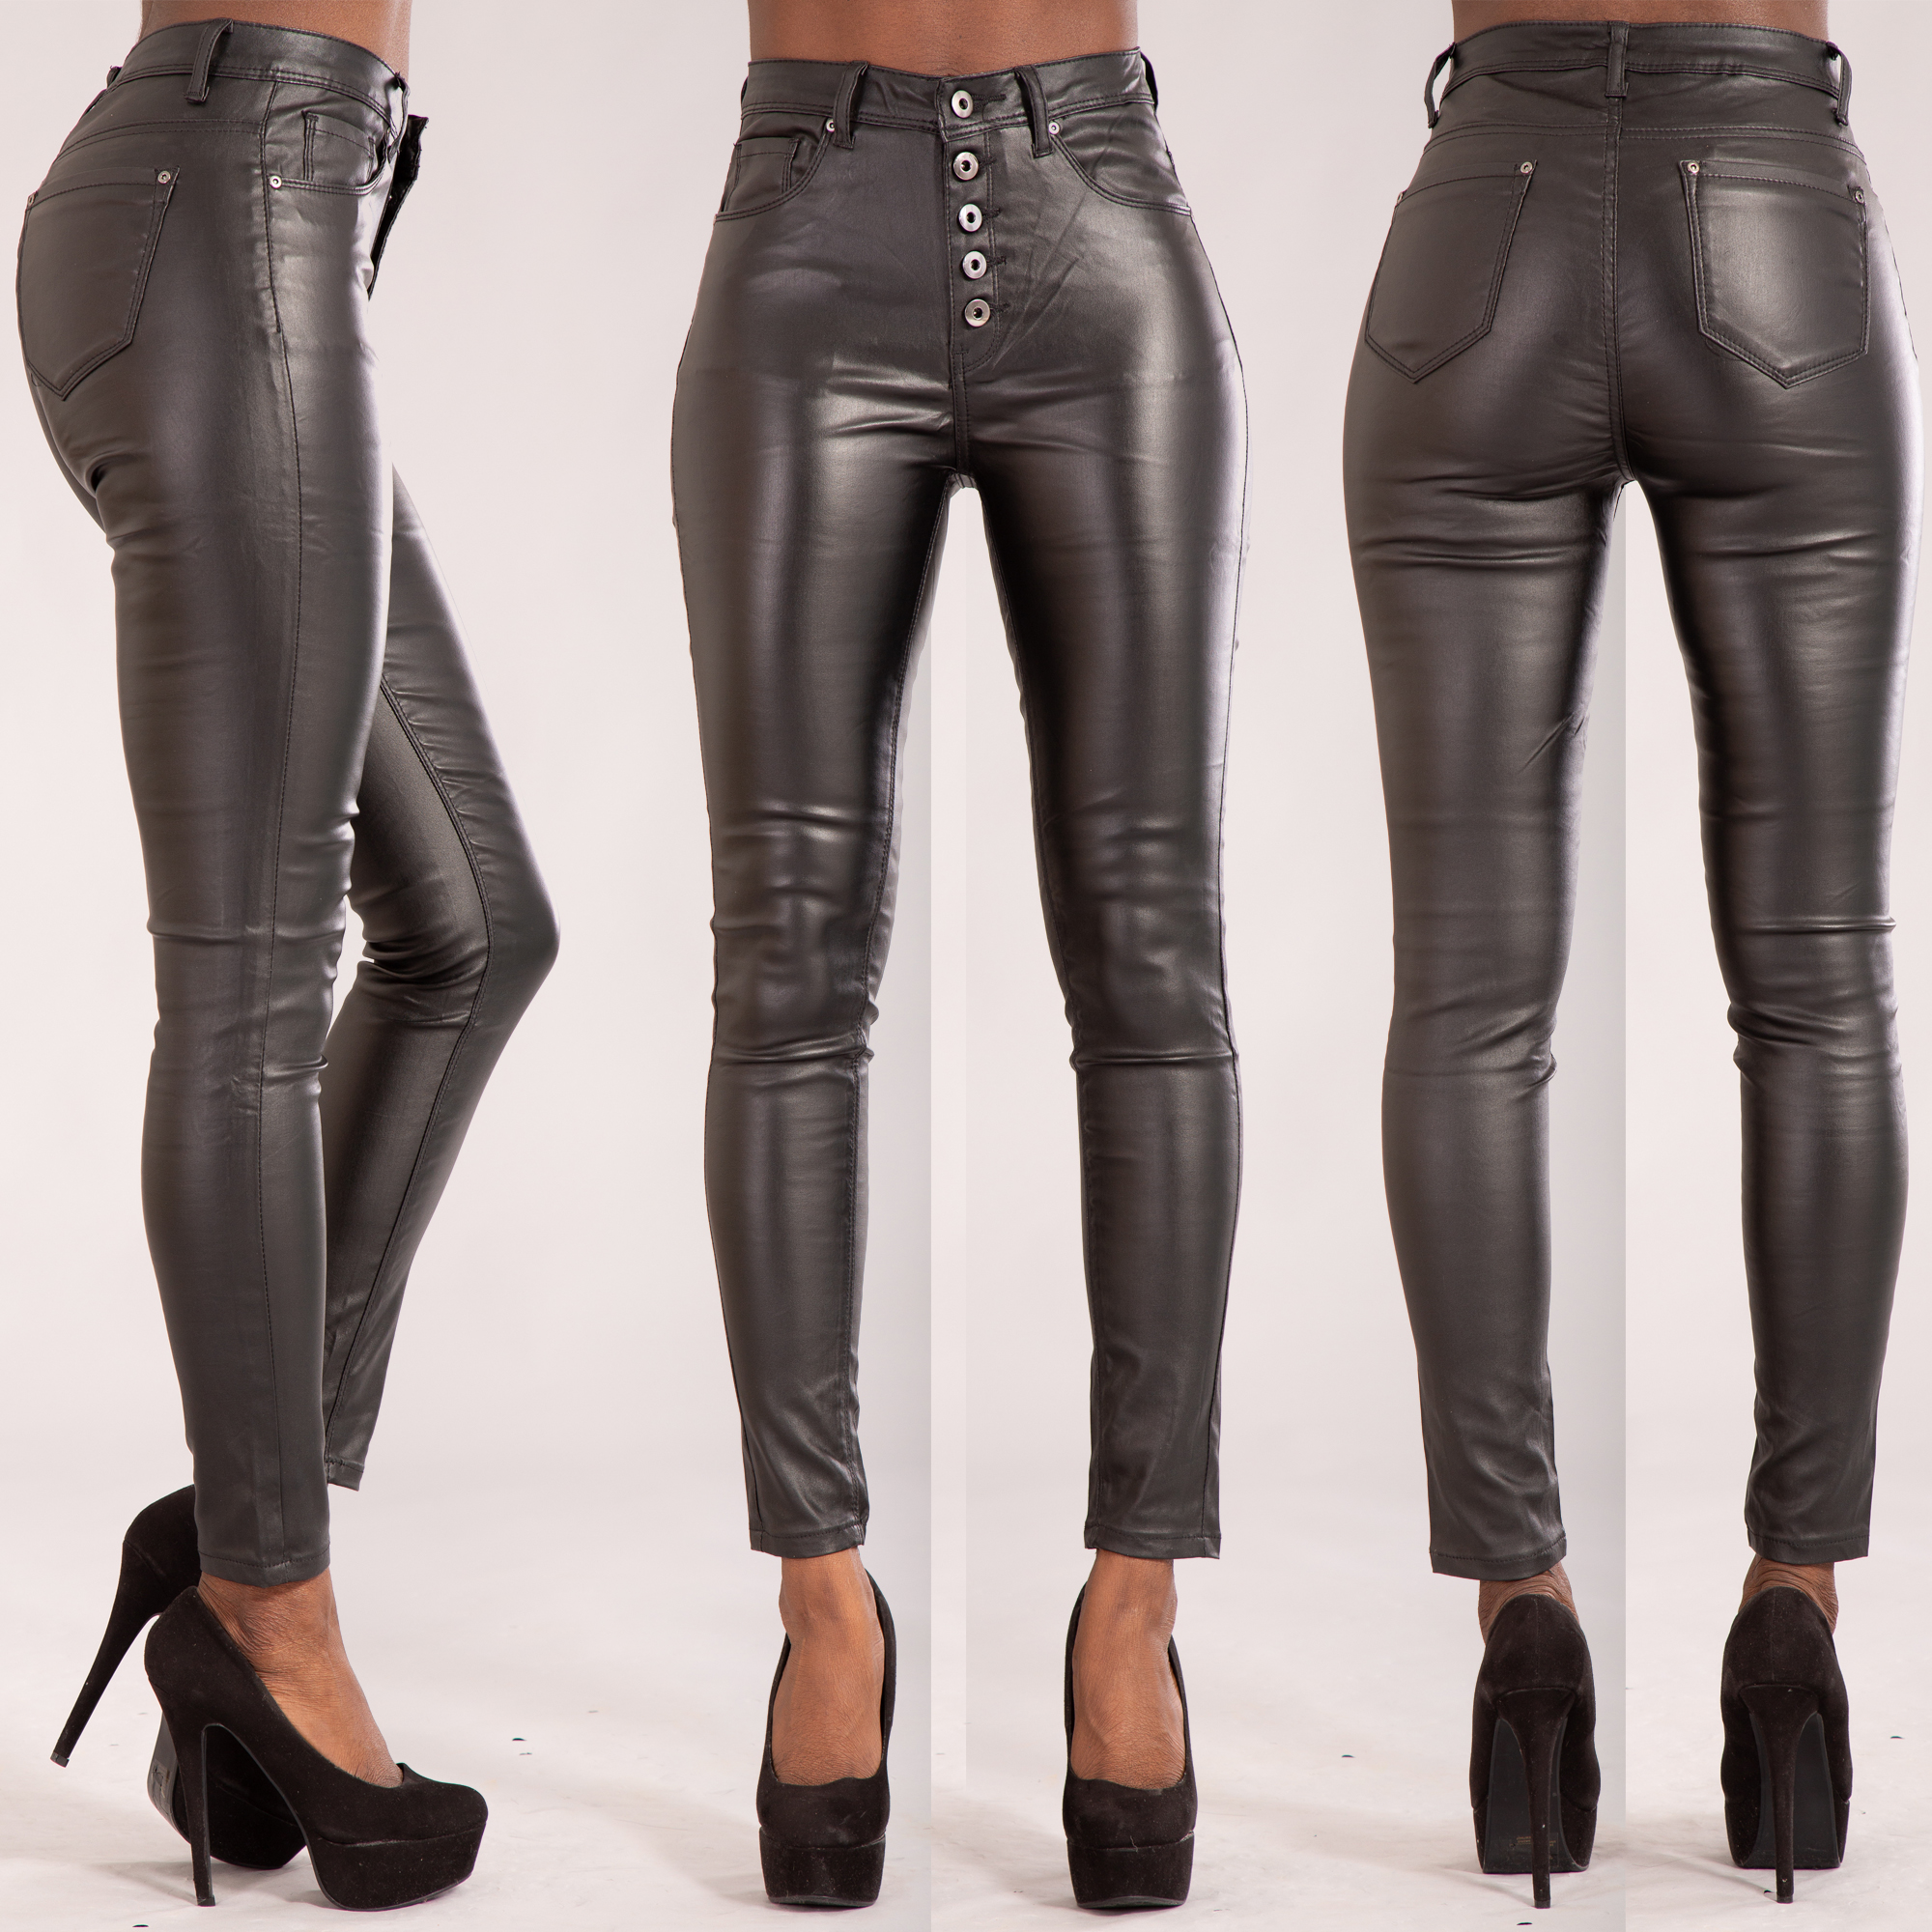 undefeated x hot-selling fashion official price Details about Women High Waist Leather Look Leggings Trousers Ladies Jeans  Size 8 10 12 14 16